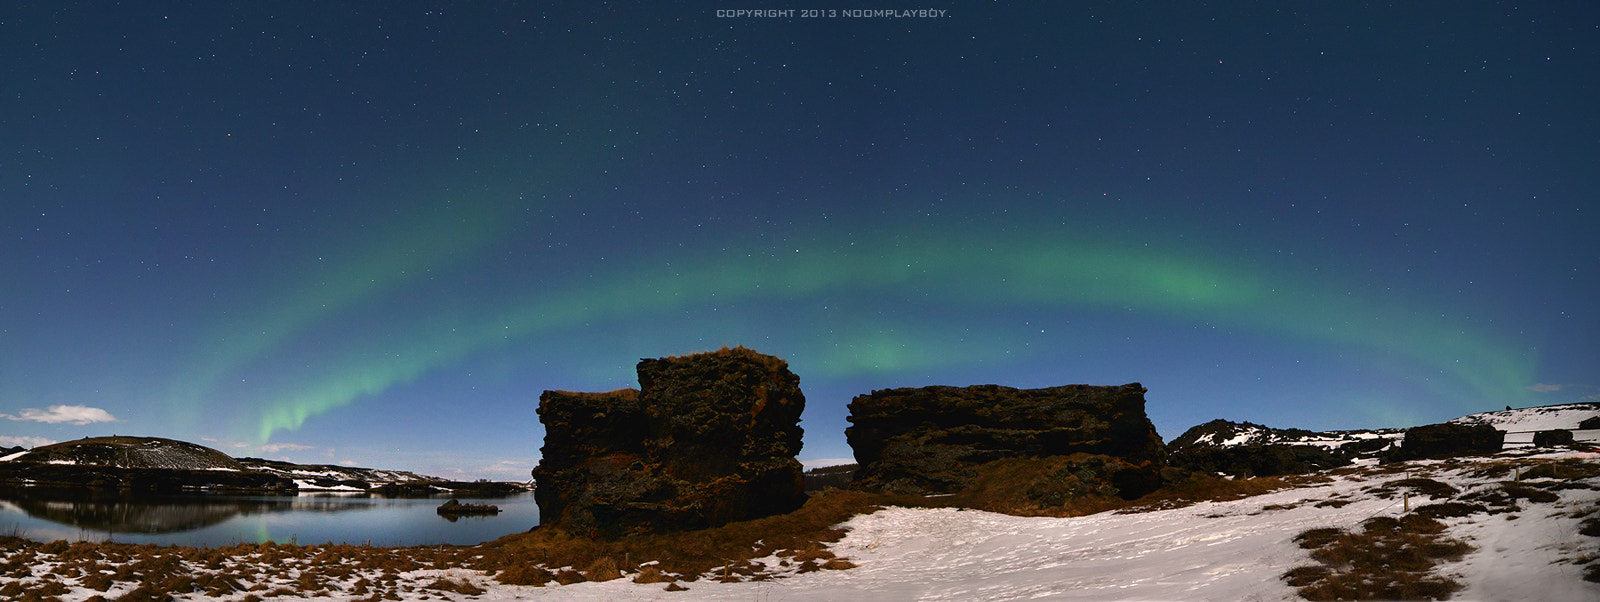 Photograph Aurora_Panorama @ Iceland by noomplayboy  on 500px